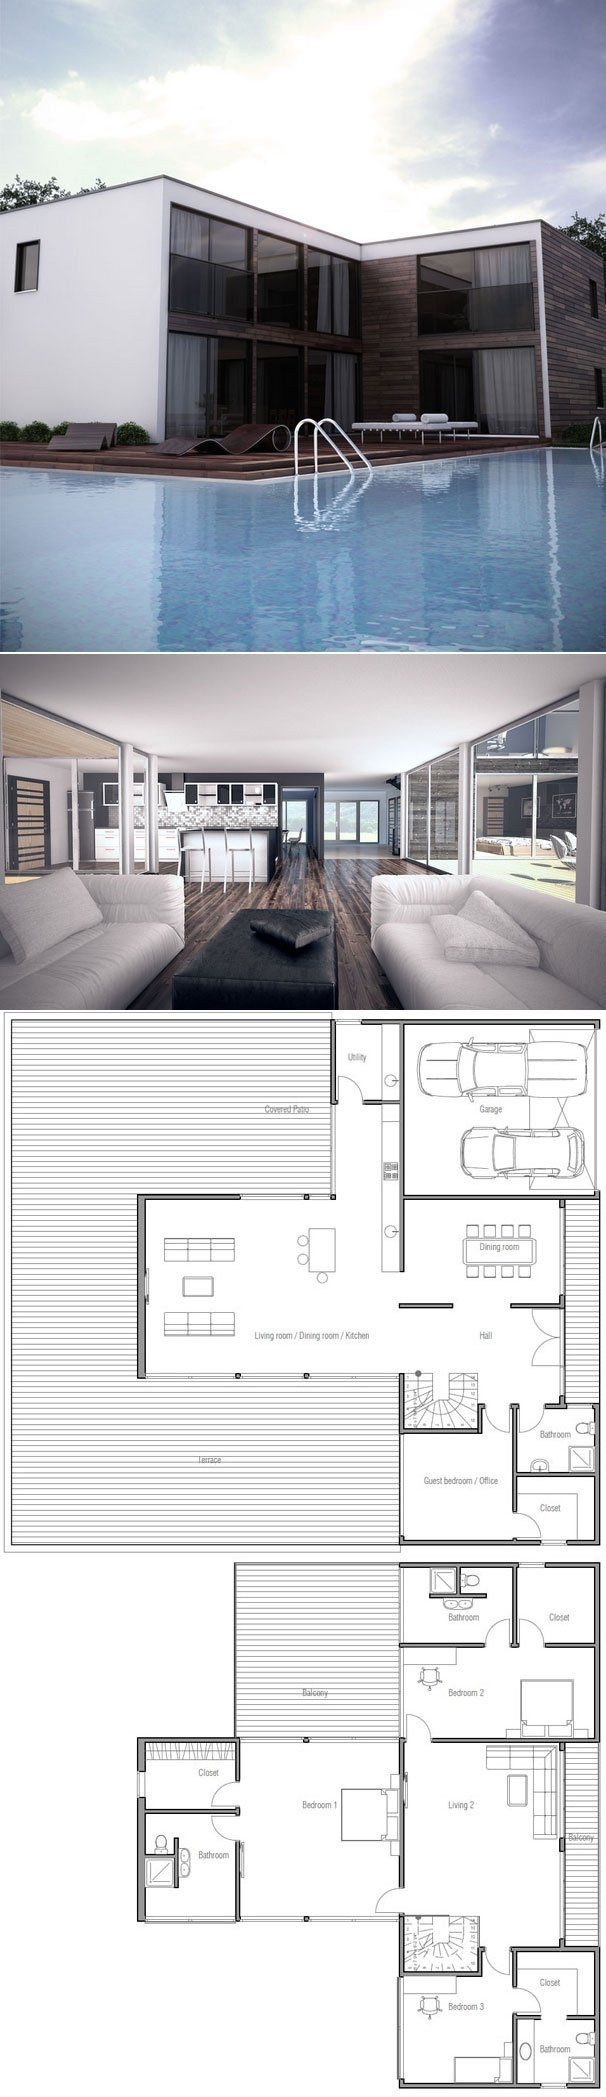 House Plan, Modern Architecture, Floor Plan from ConceptHome.com